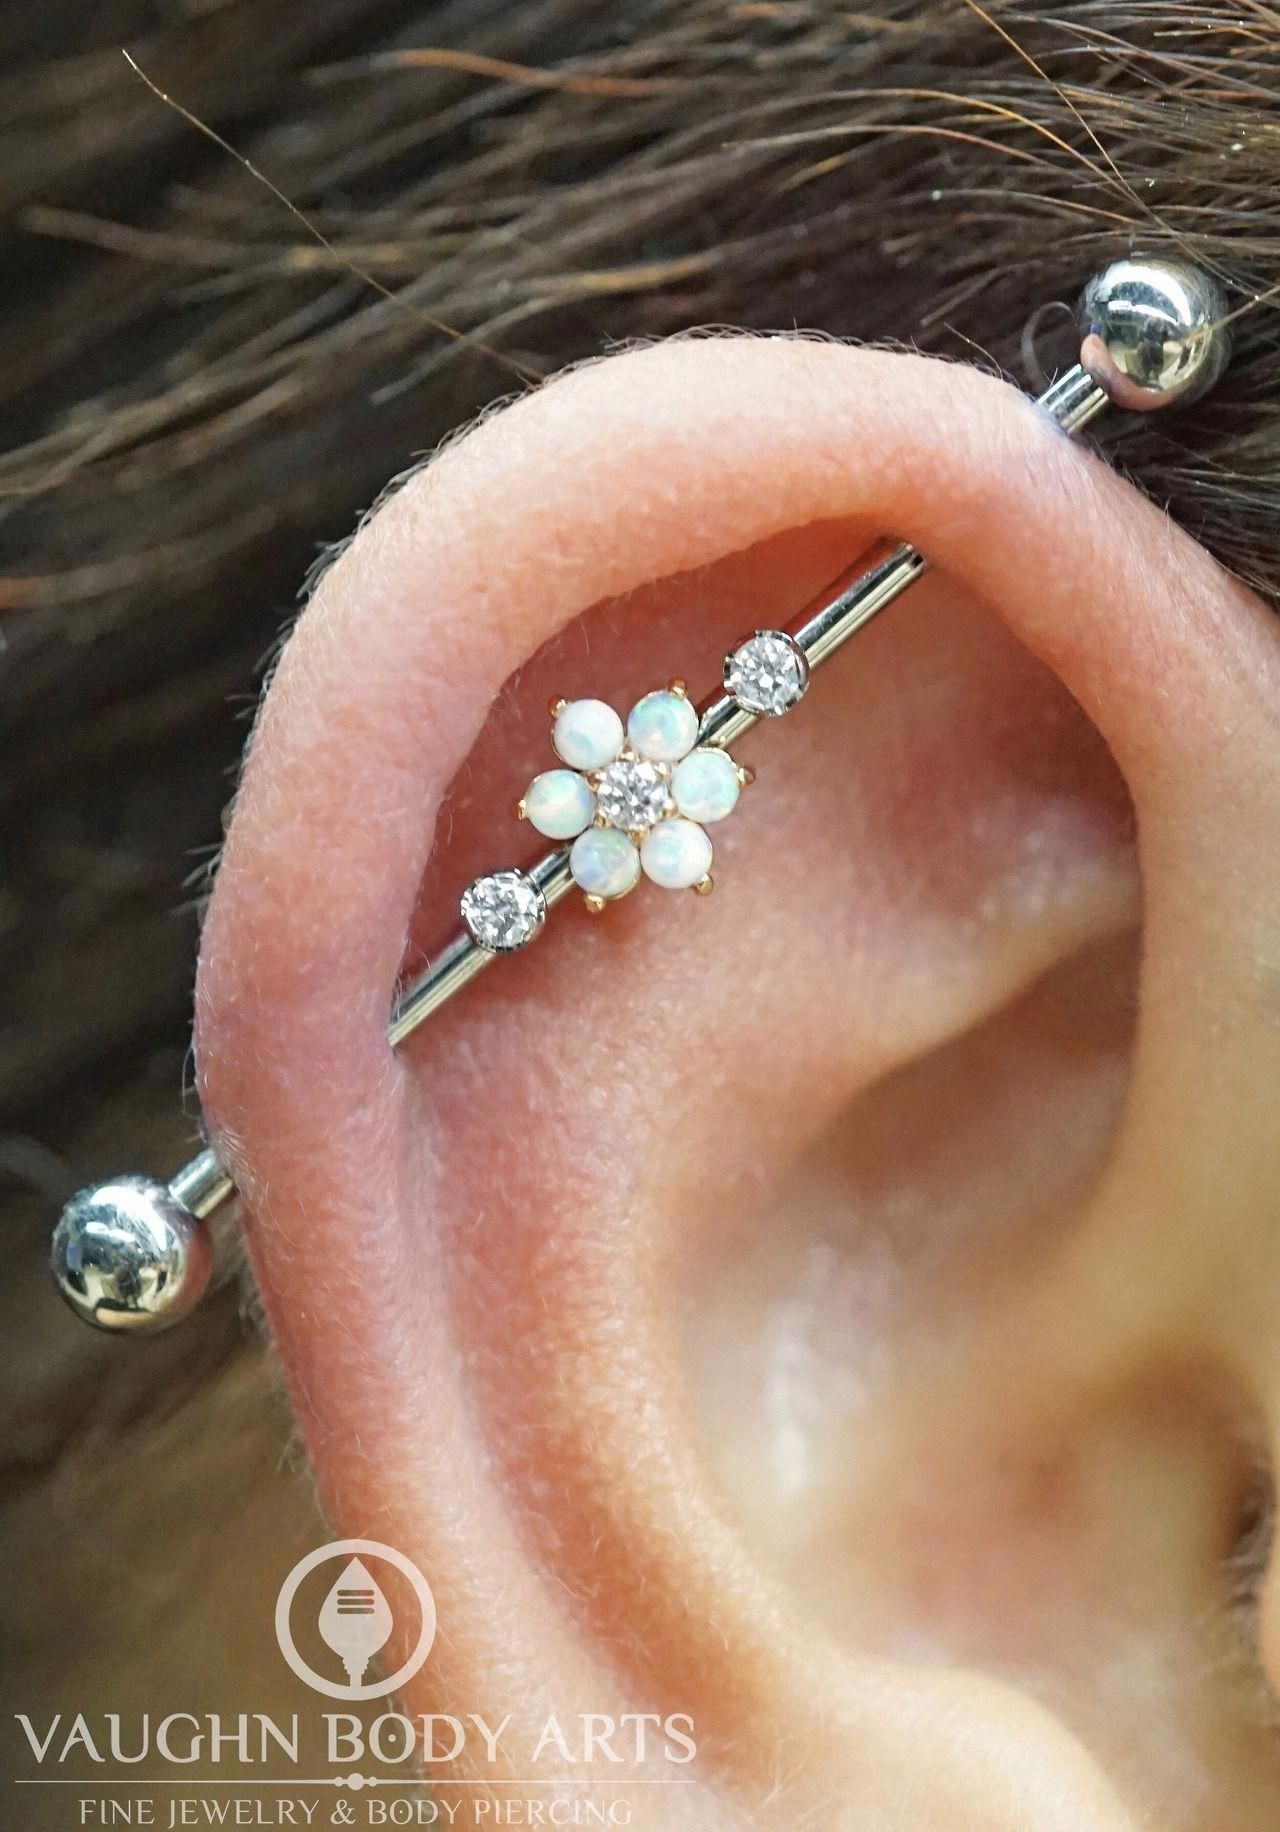 Industrial Piercings Sure Have Been Popular Lately Here S One We